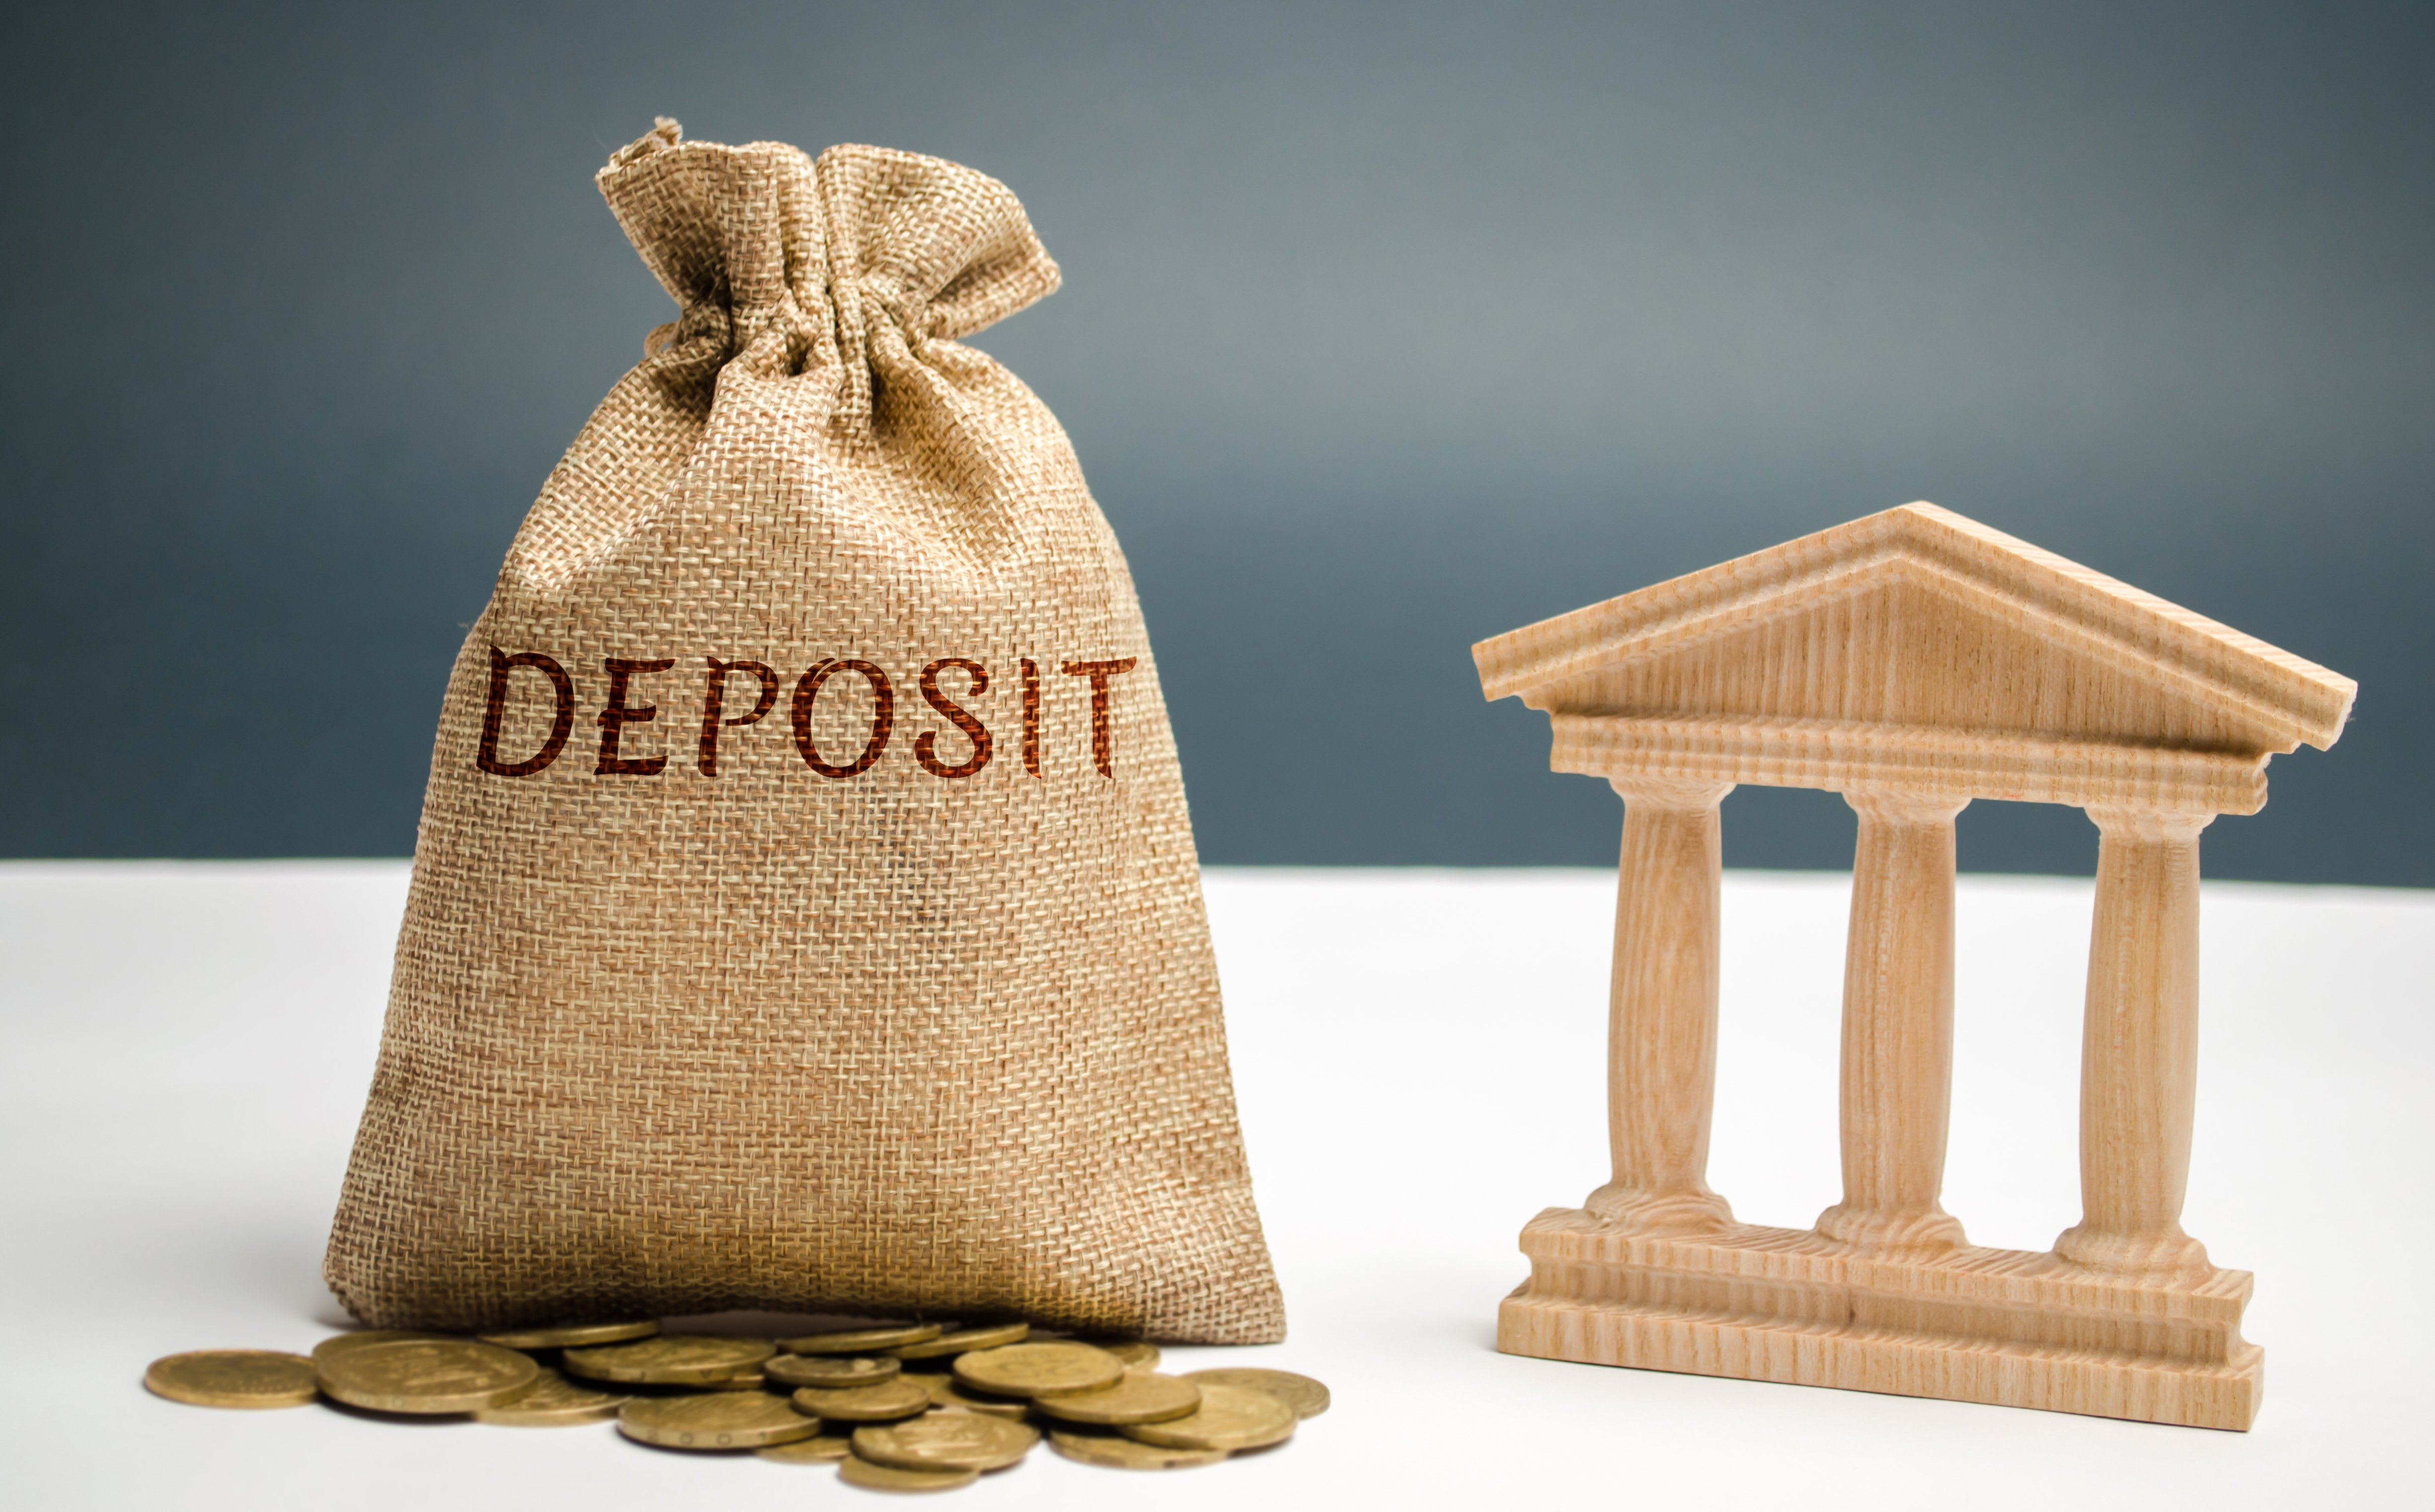 """Moneybag that says """"deposit"""" next to a house"""